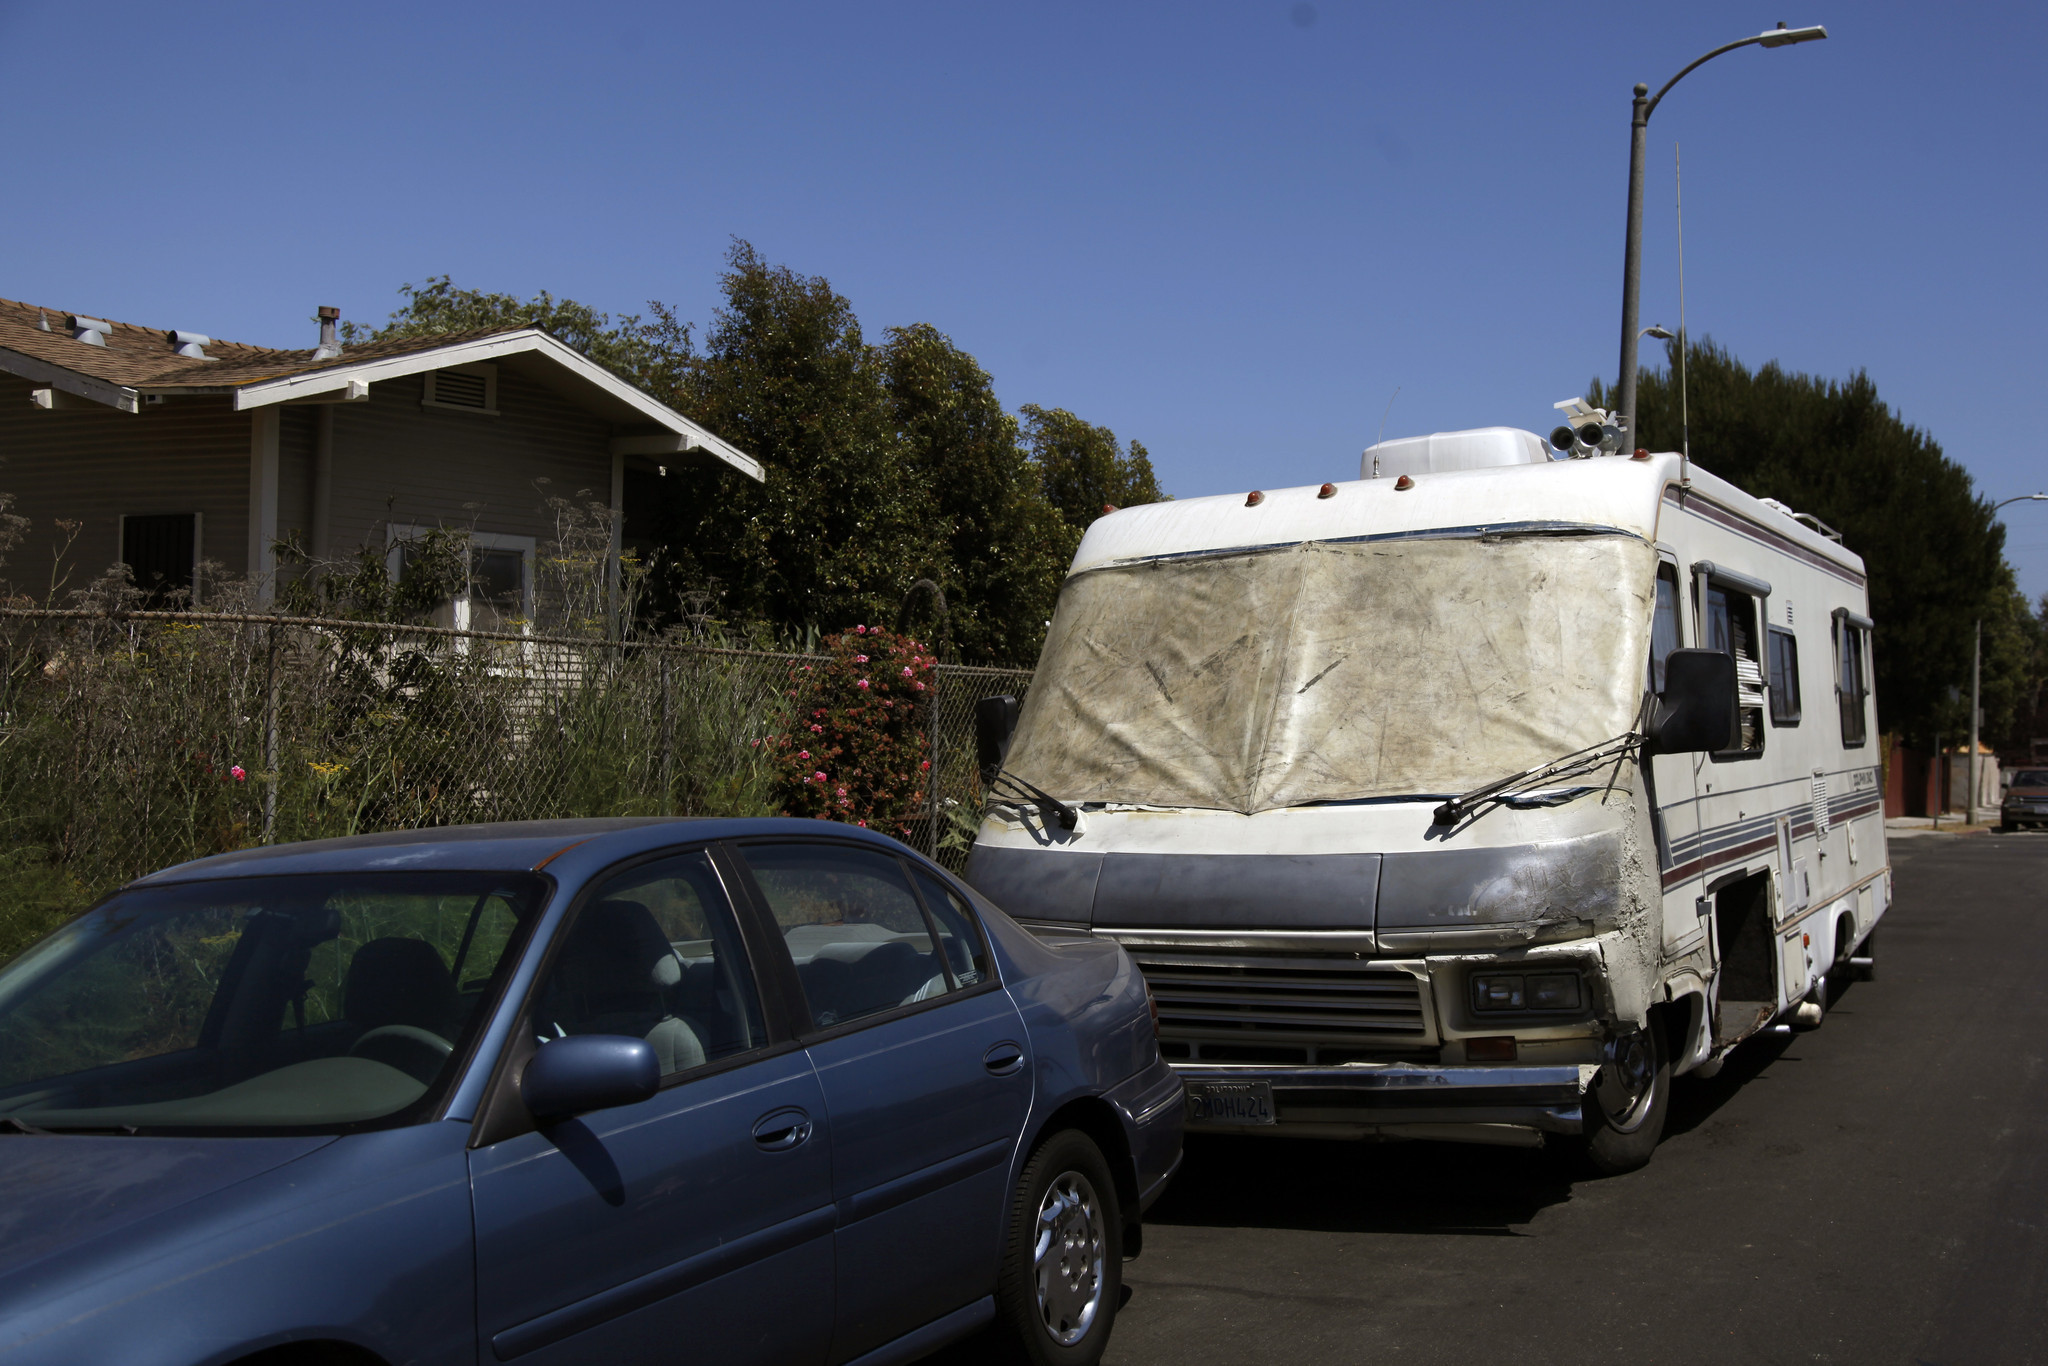 L.A. will seek to impose new ban on living in vehicles